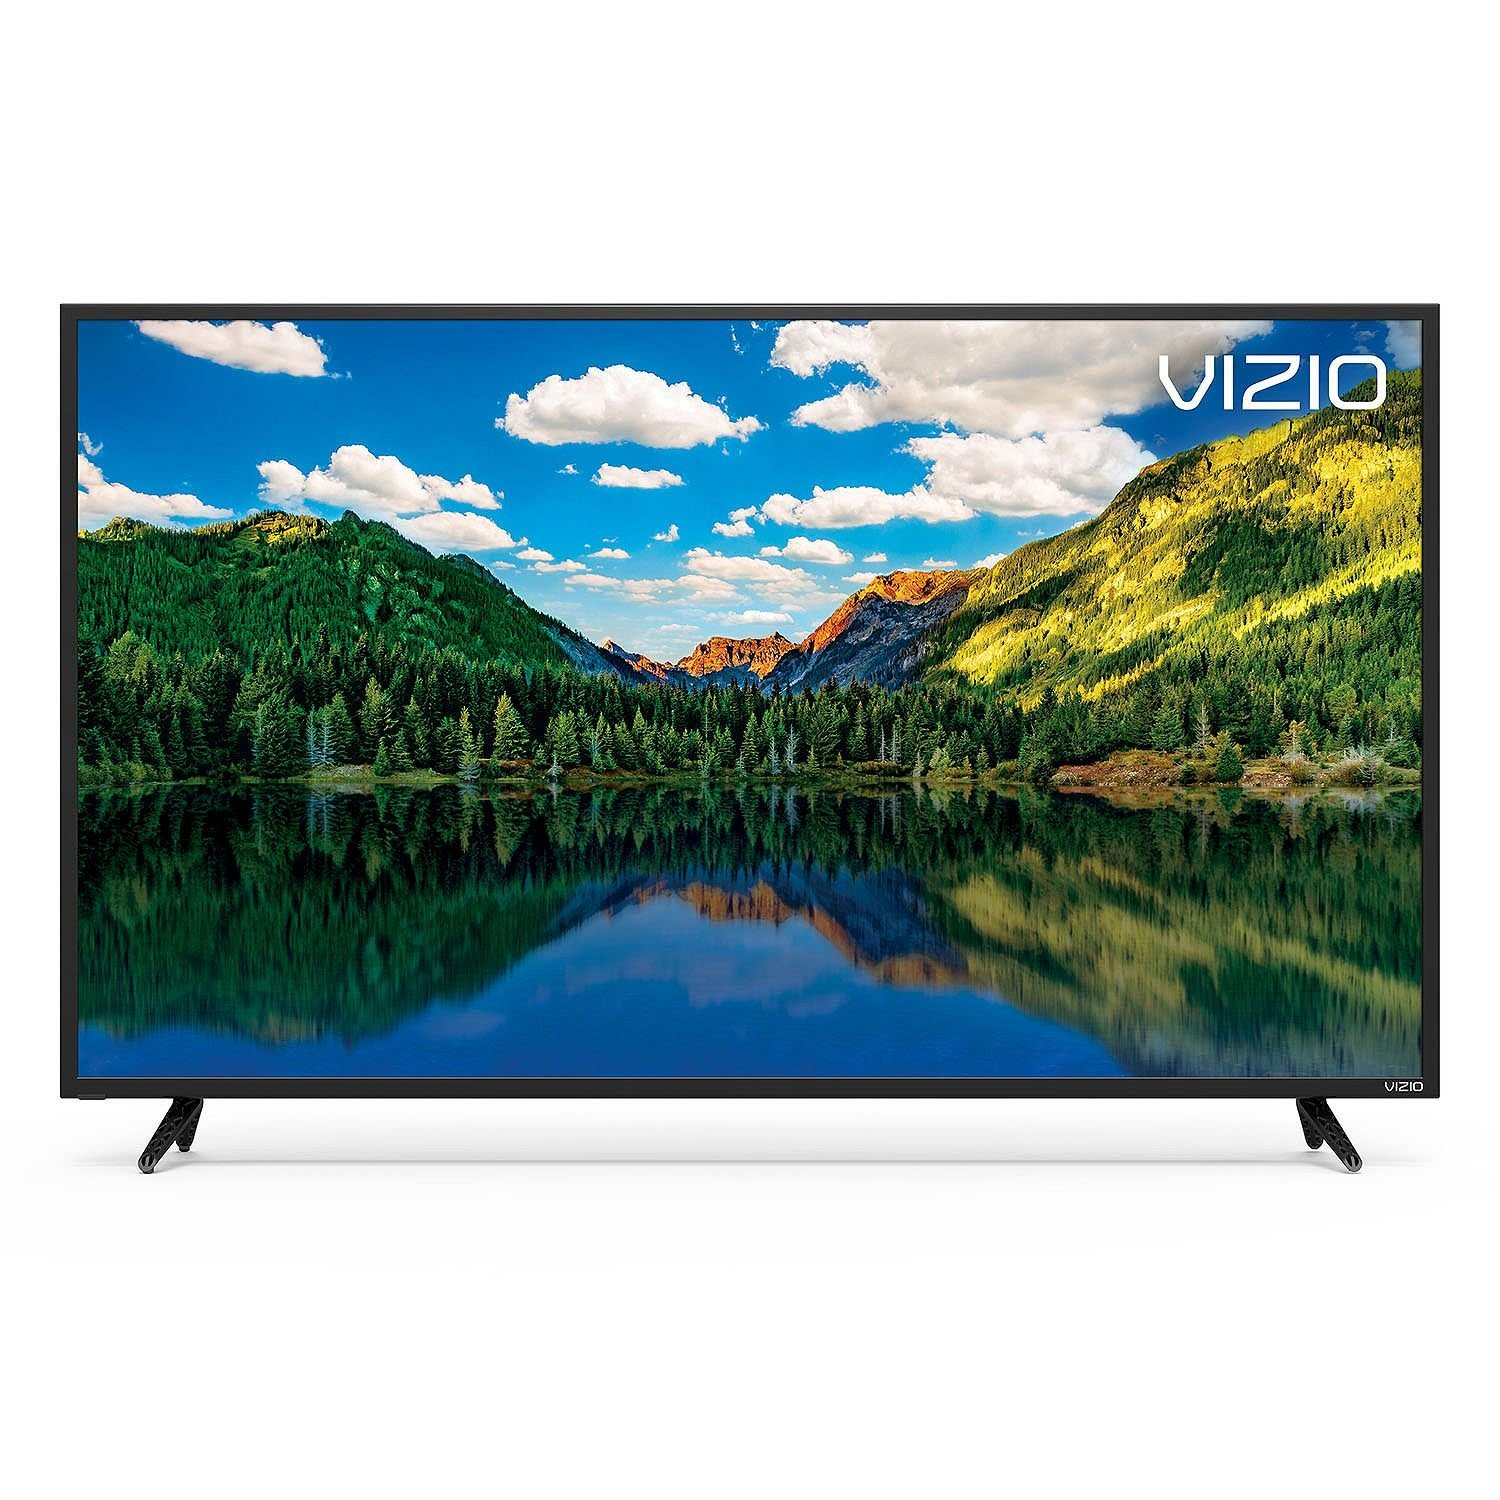 An image related to VIZIO D55un-E1 55-Inch Flat Screen 4K LED 60Hz TV